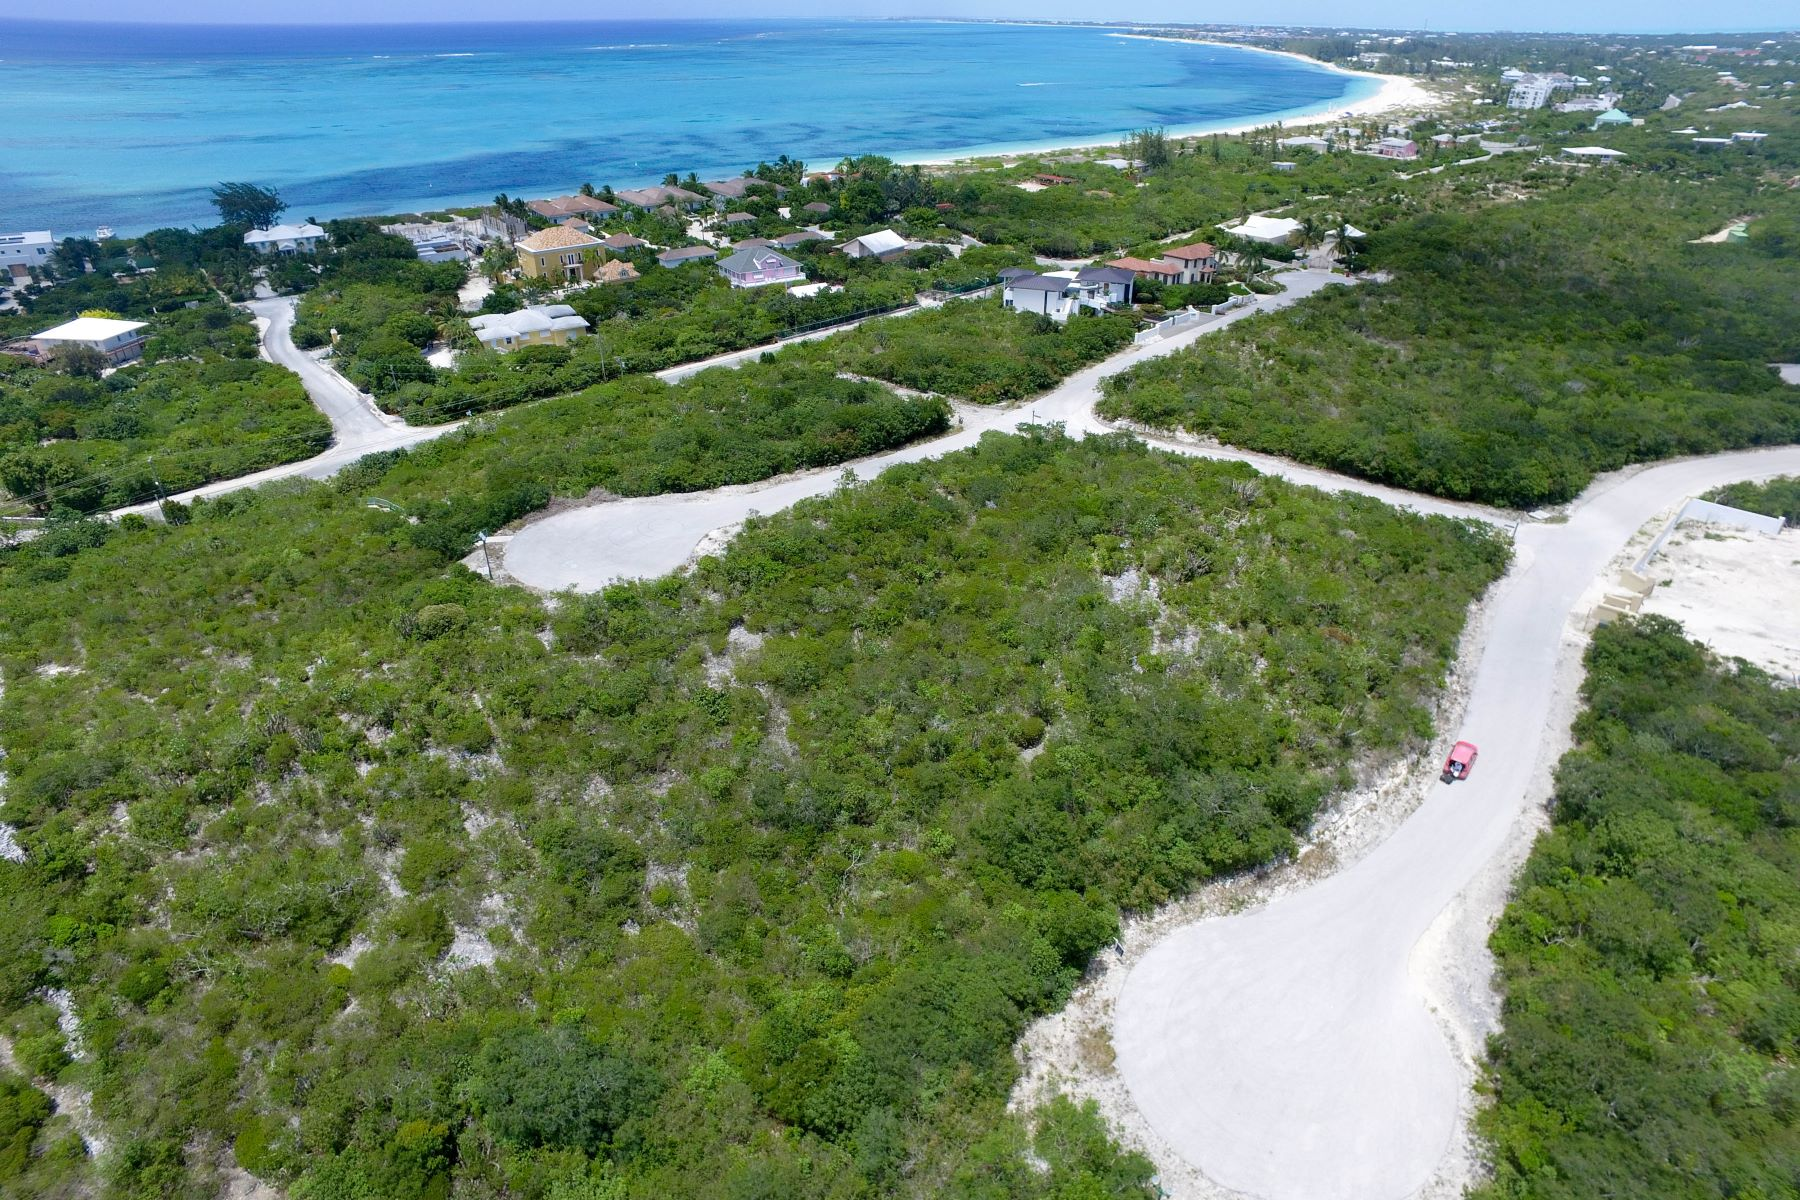 Land for Sale at Richmond Commons Oceanview Richmond Hill, Providenciales TCI BWI Turks And Caicos Islands